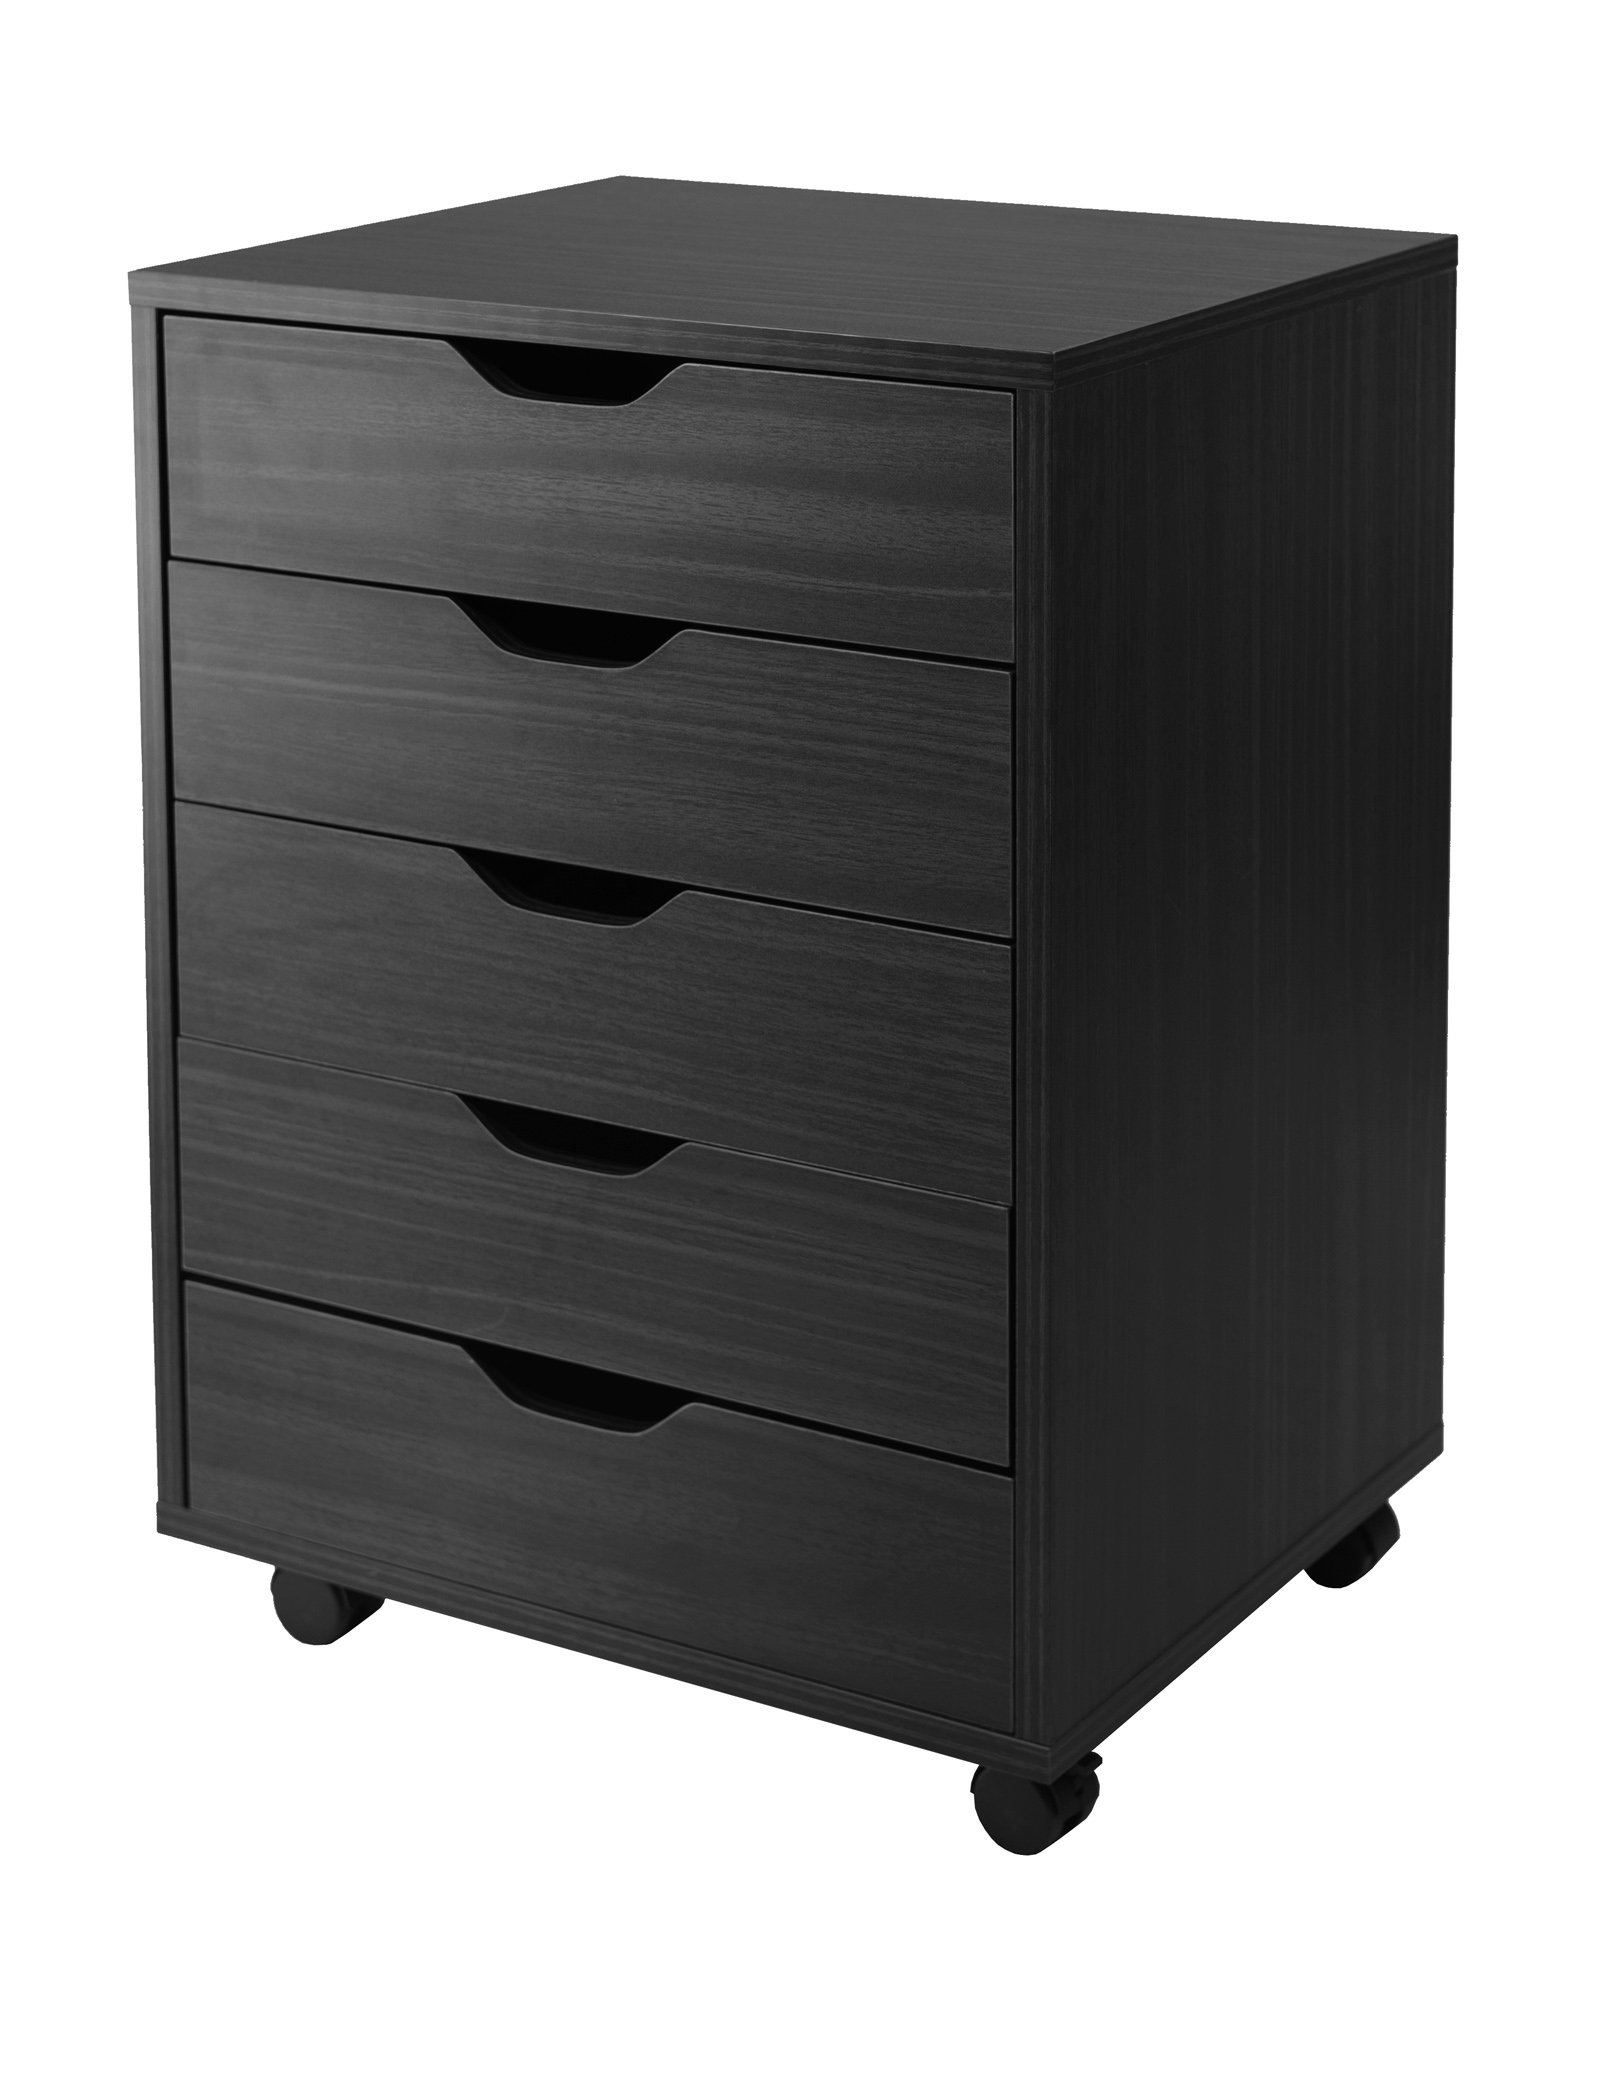 Winsome 20519 Halifax Storage/Organization, 5 Drawer, Black by Winsome